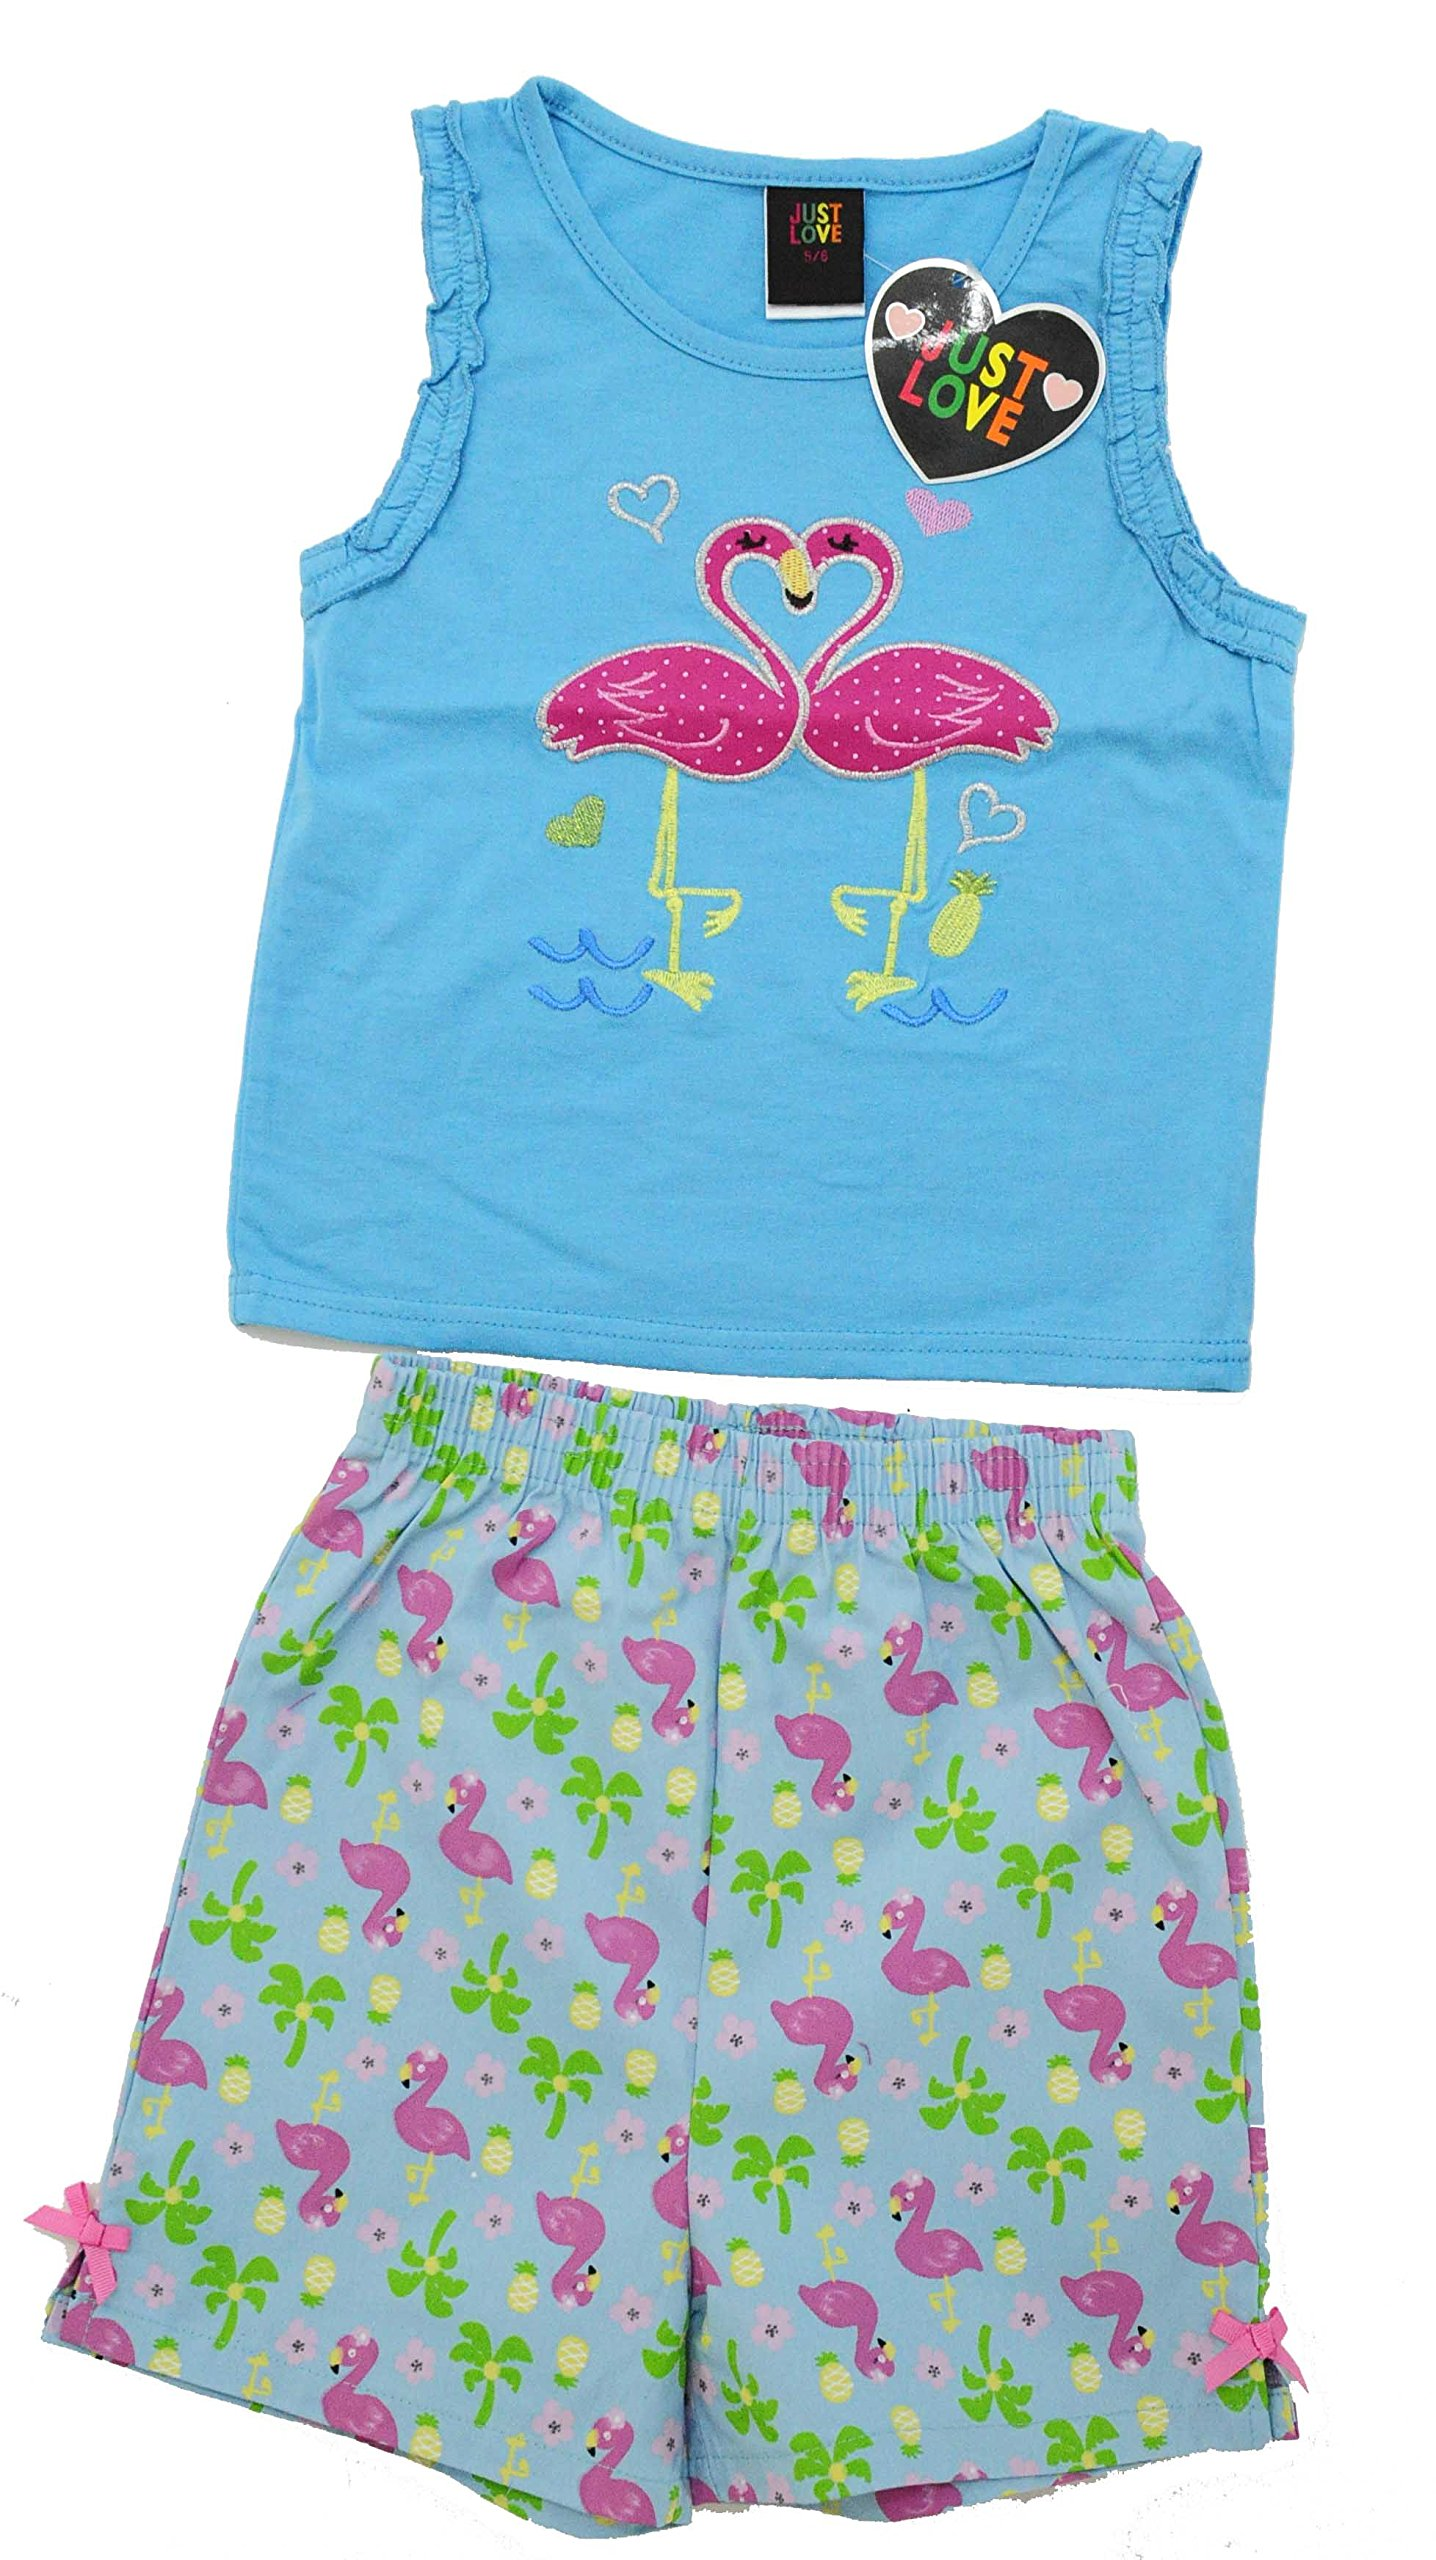 Just Love 4012-6X Two Piece Girls Shorts Set